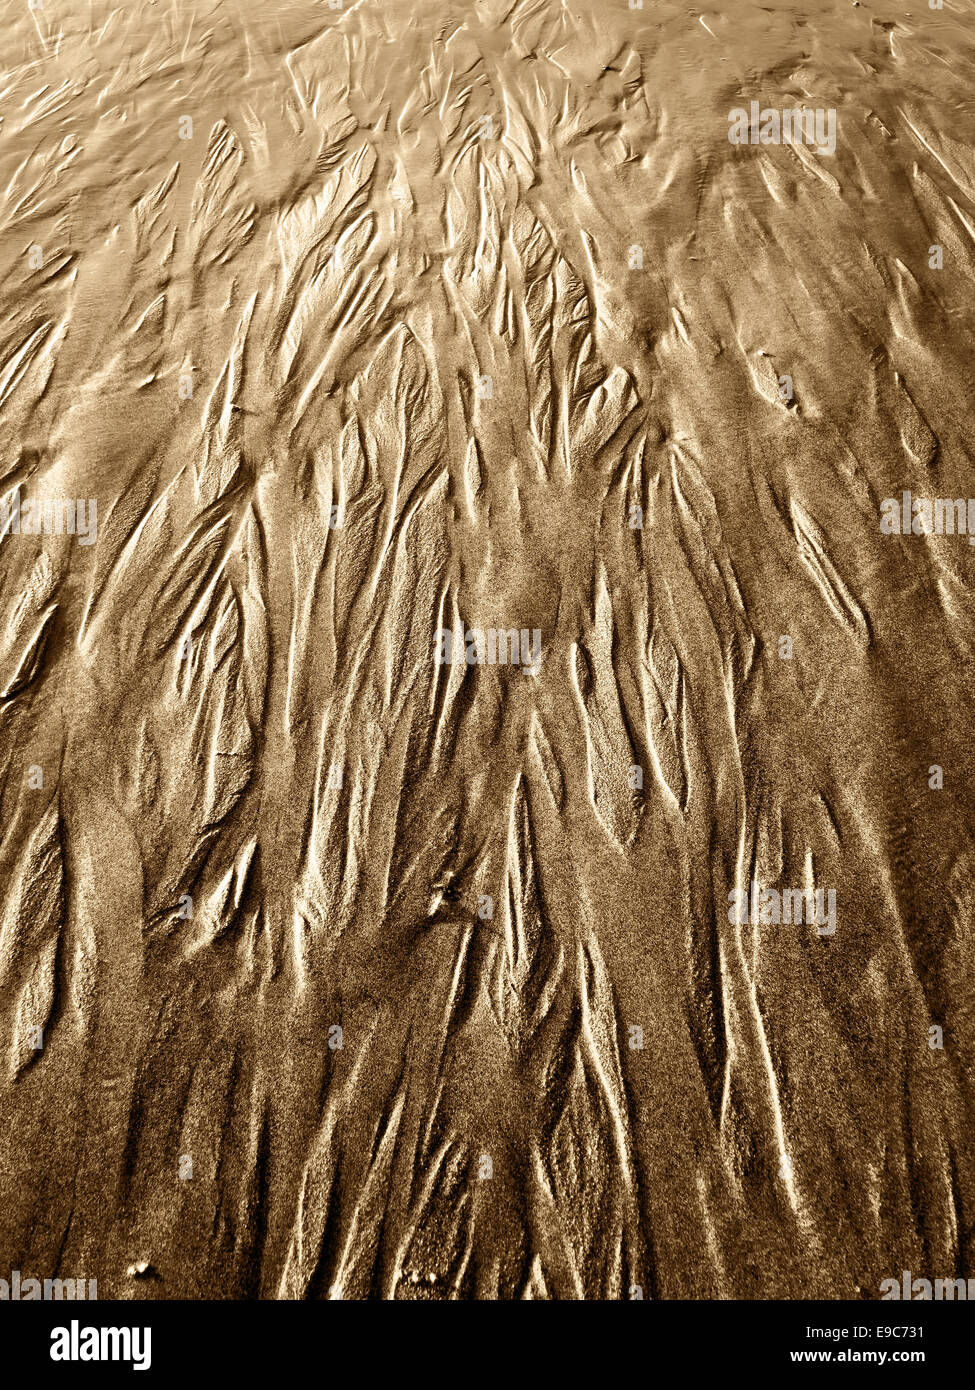 abstract photo with sand texture - Stock Image